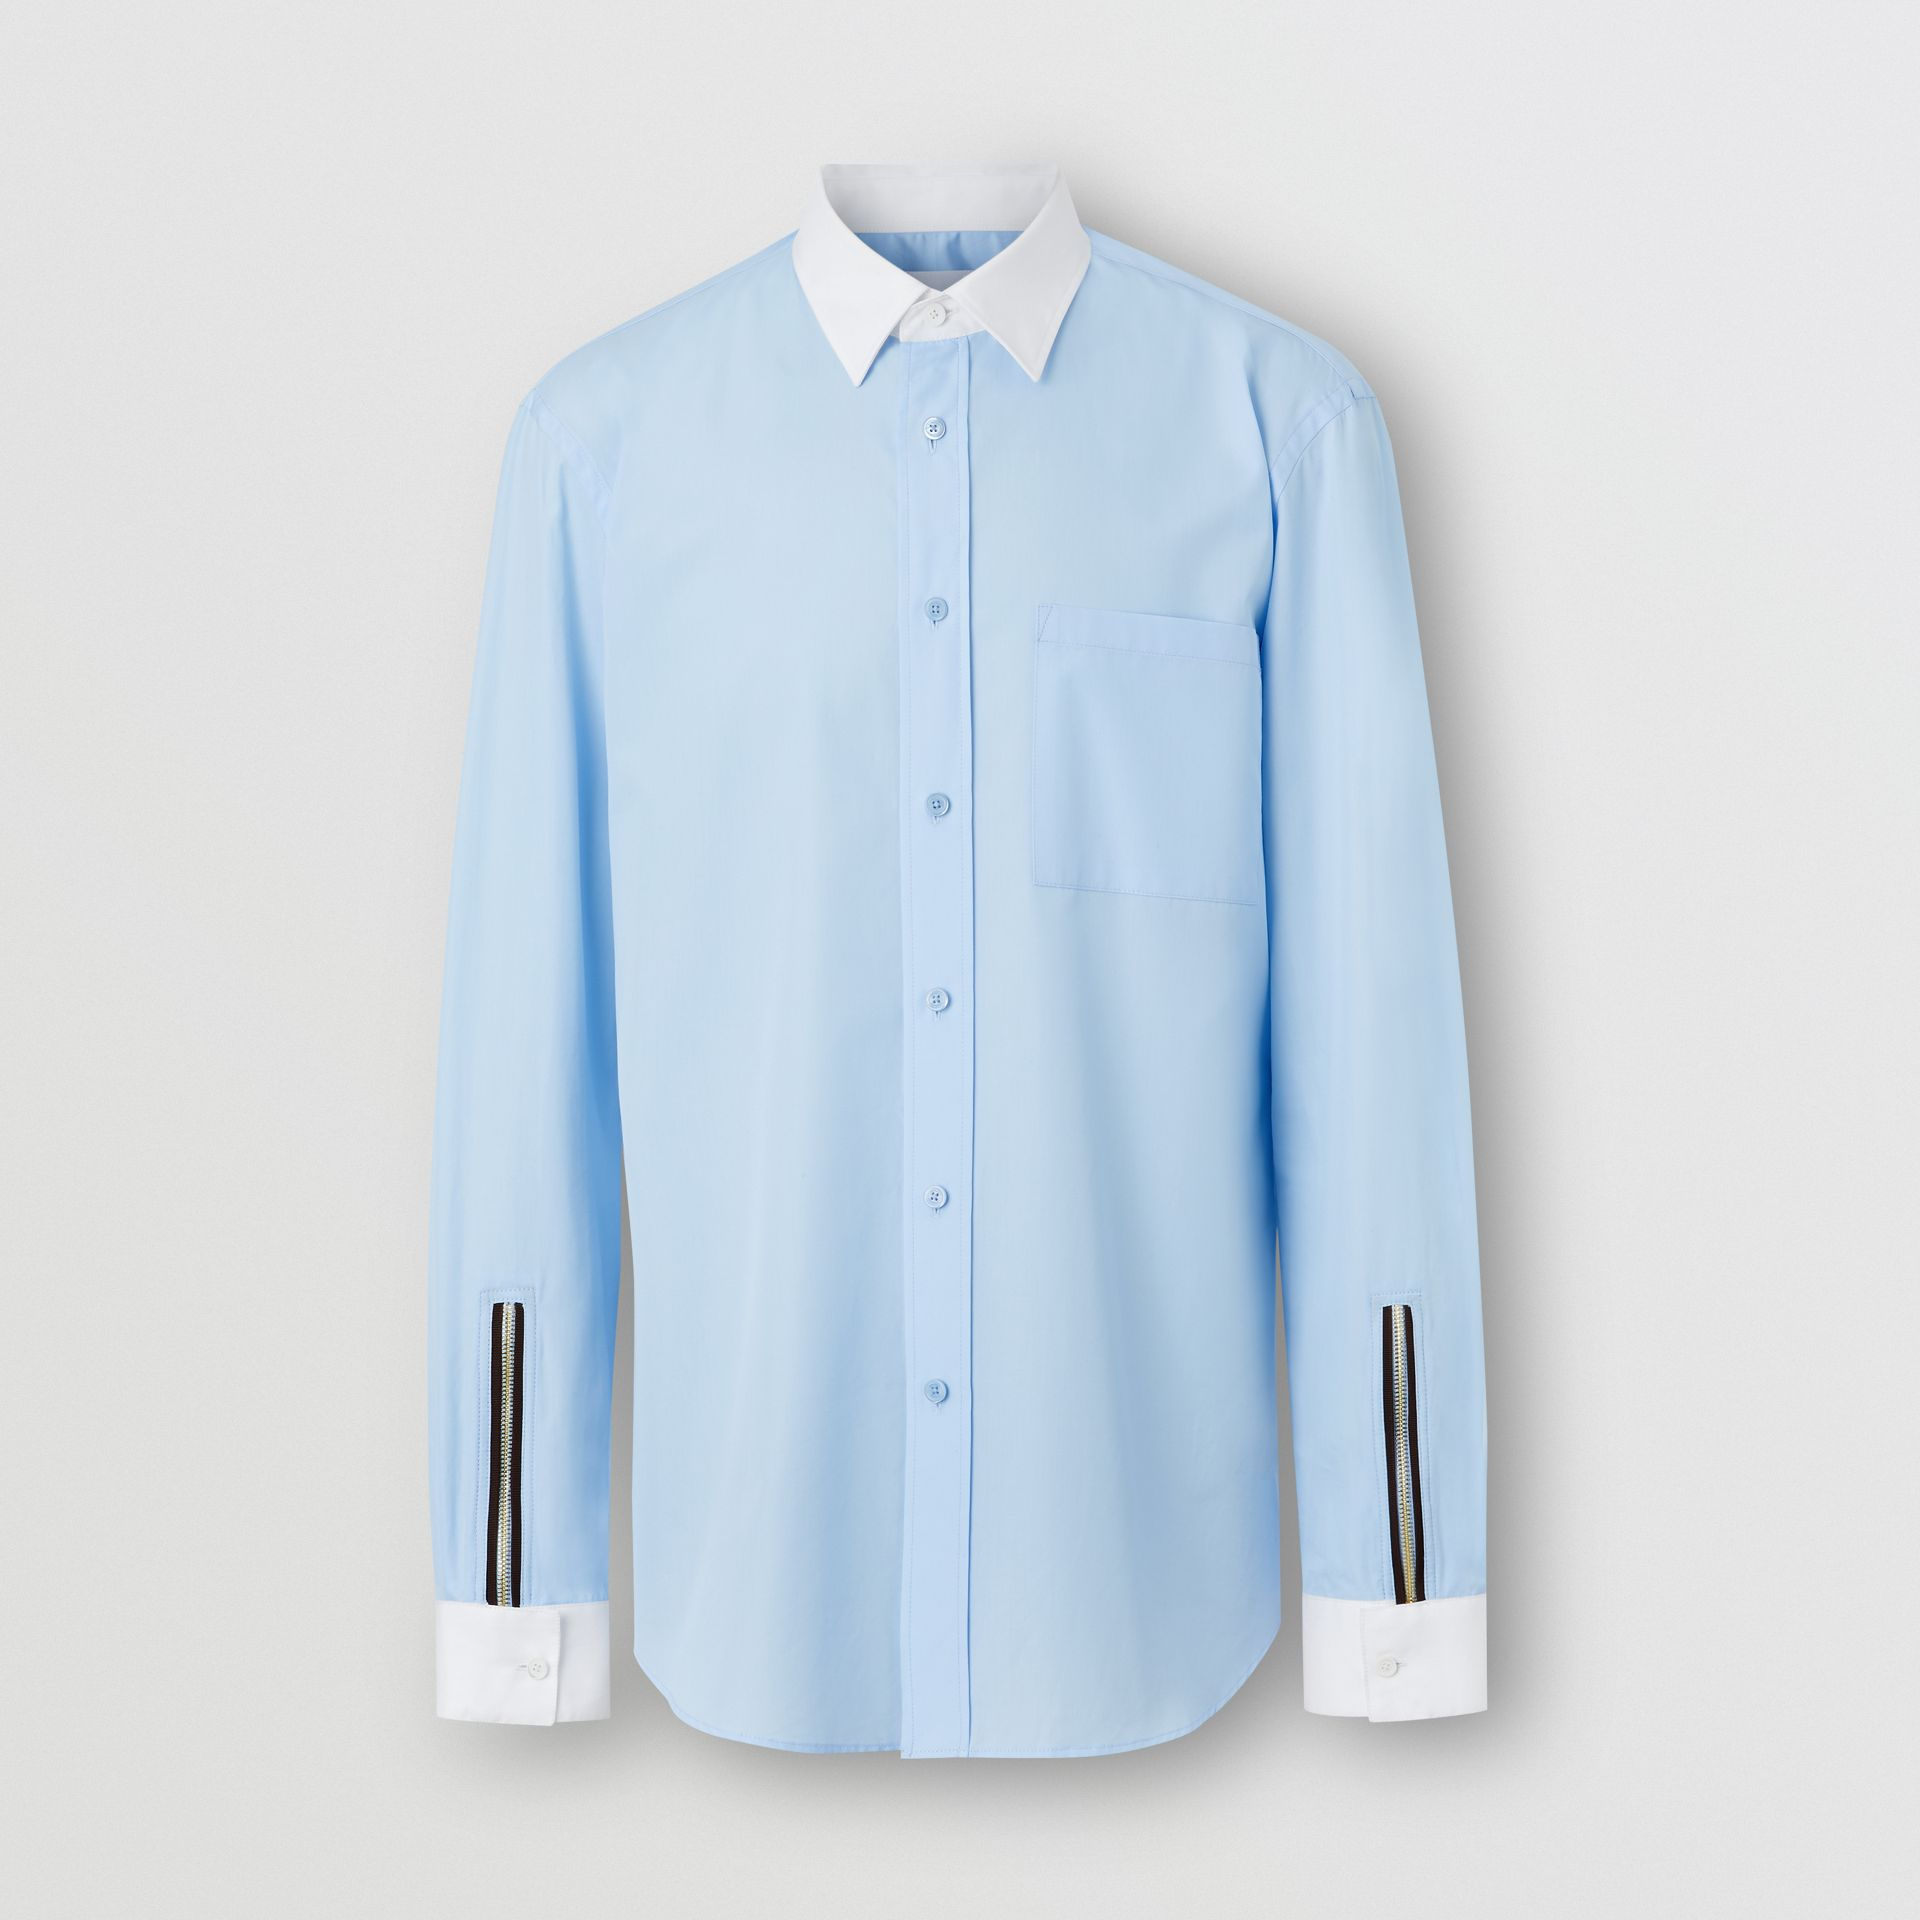 Classic Fit Zip Detail Cotton Poplin Shirt in Pale Blue - Men | Burberry - gallery image 3